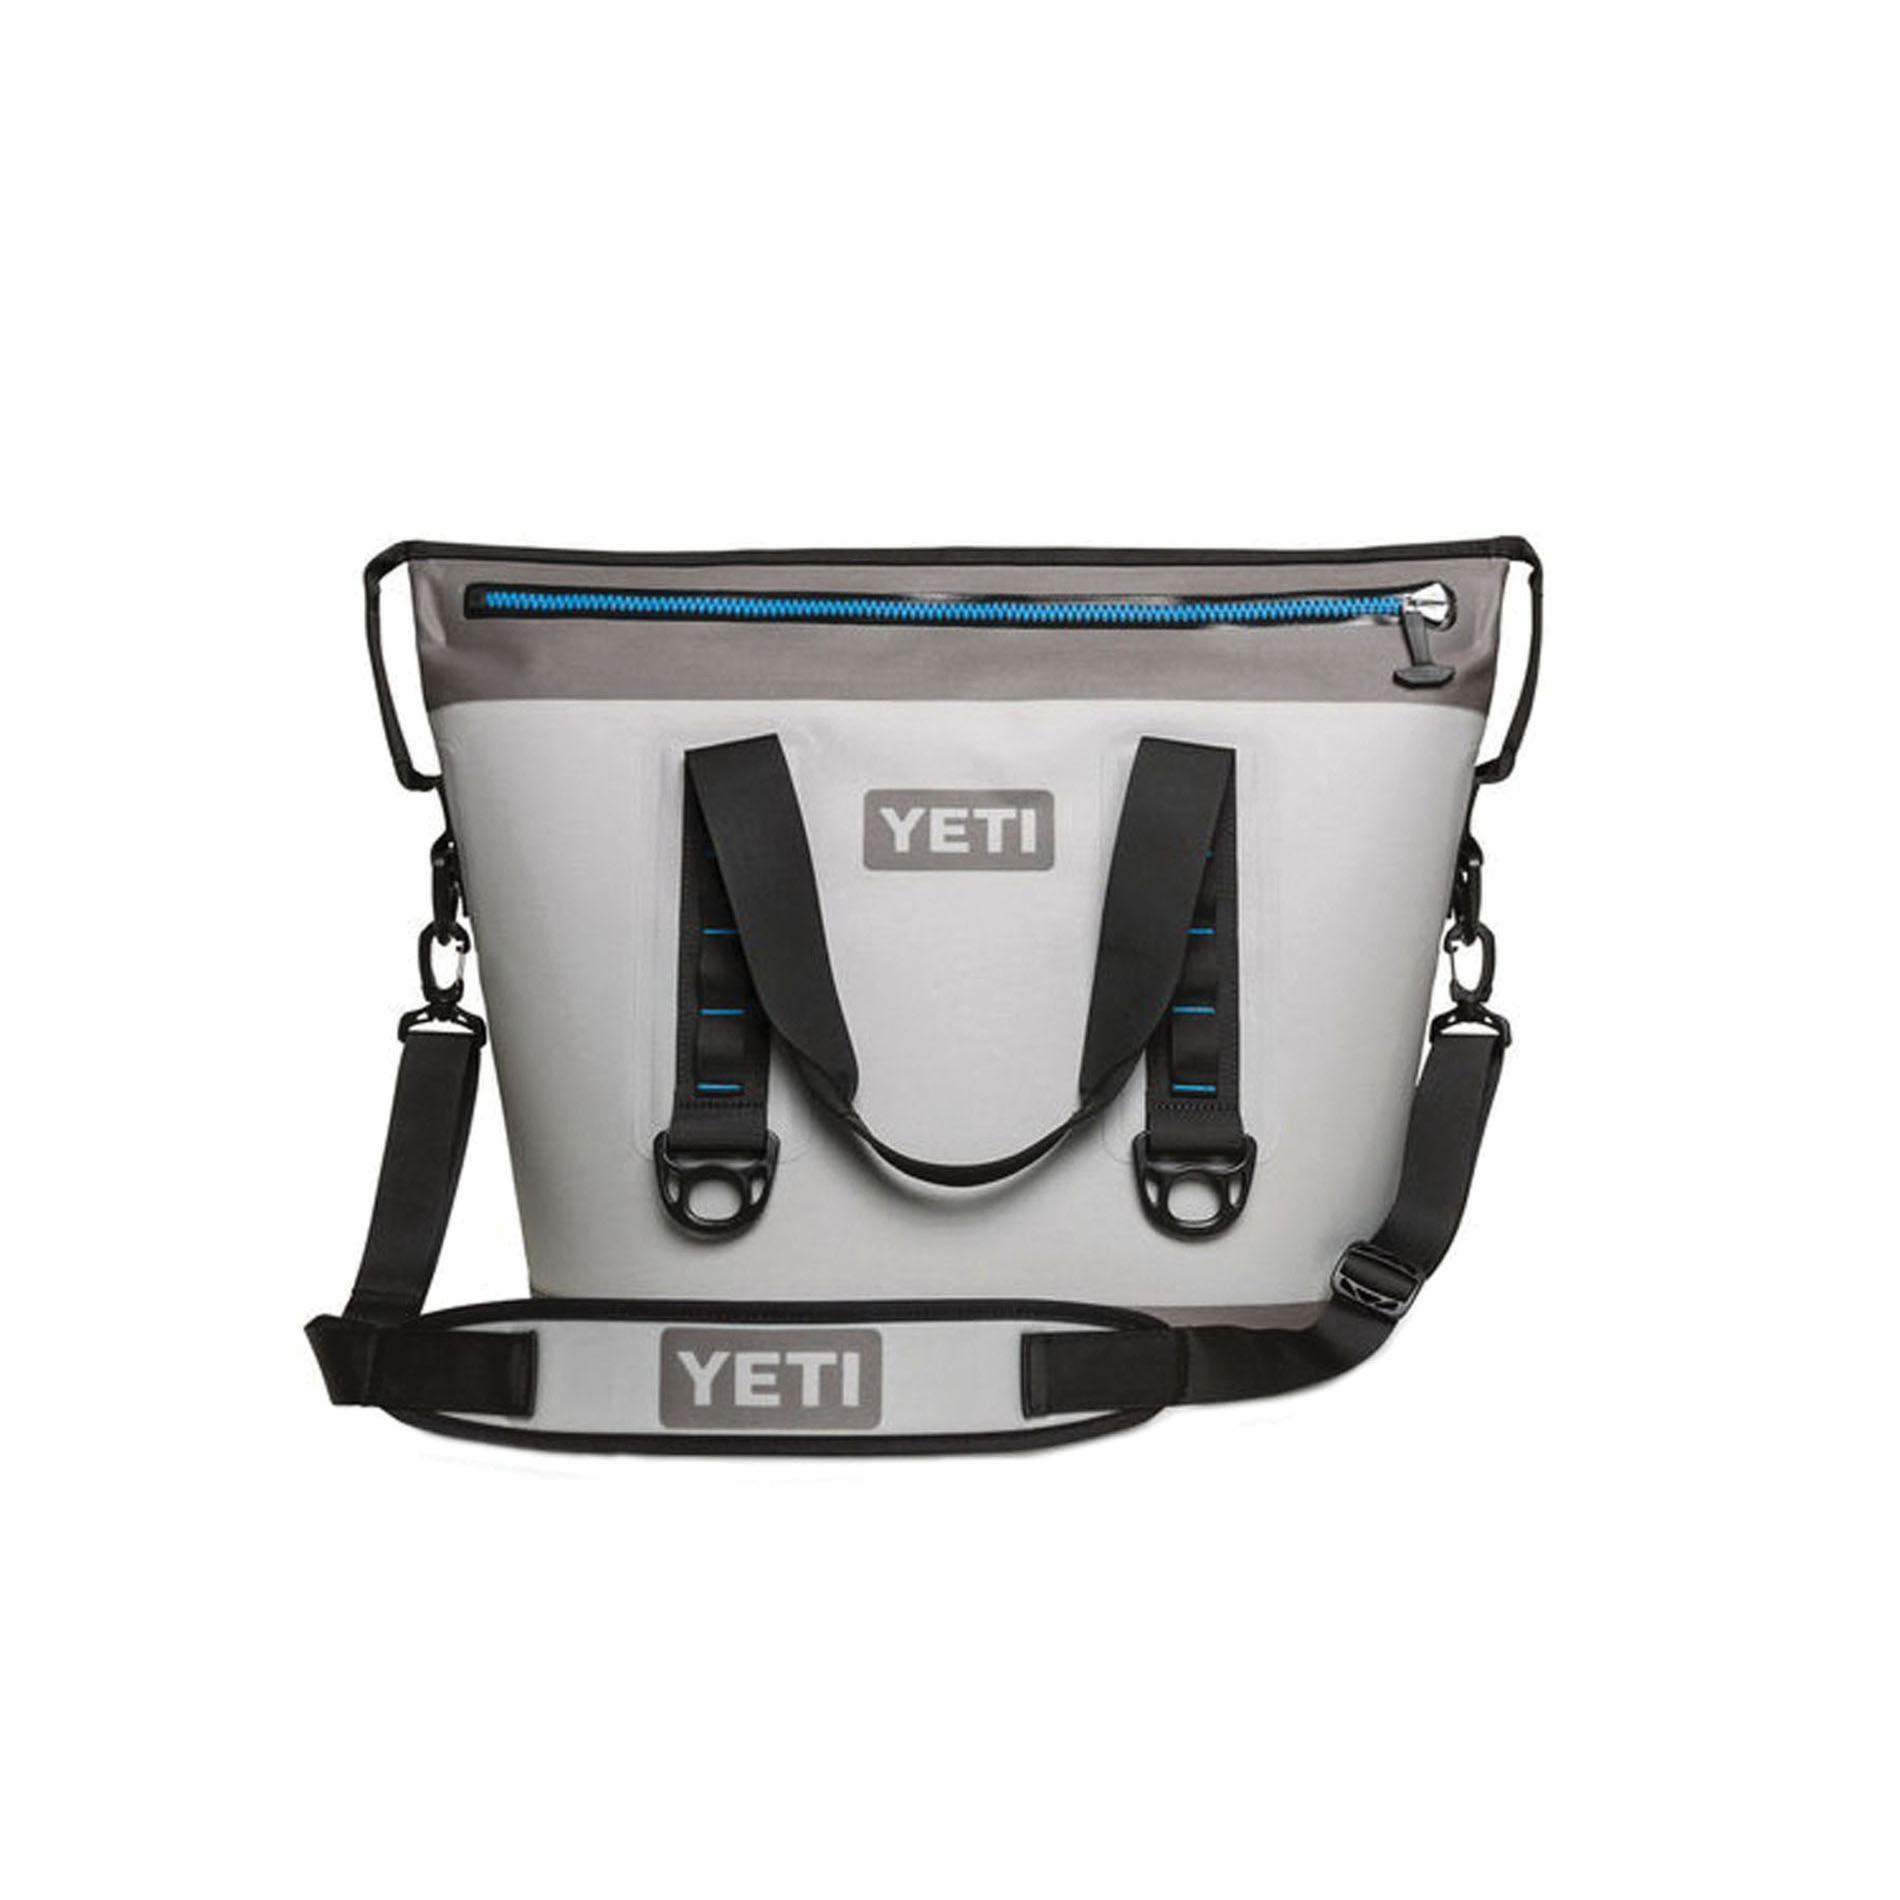 Picture of YETI YHOPT30G Soft Bag Cooler, 23 Cans Capacity, Fog Gray/Tahoe Blue